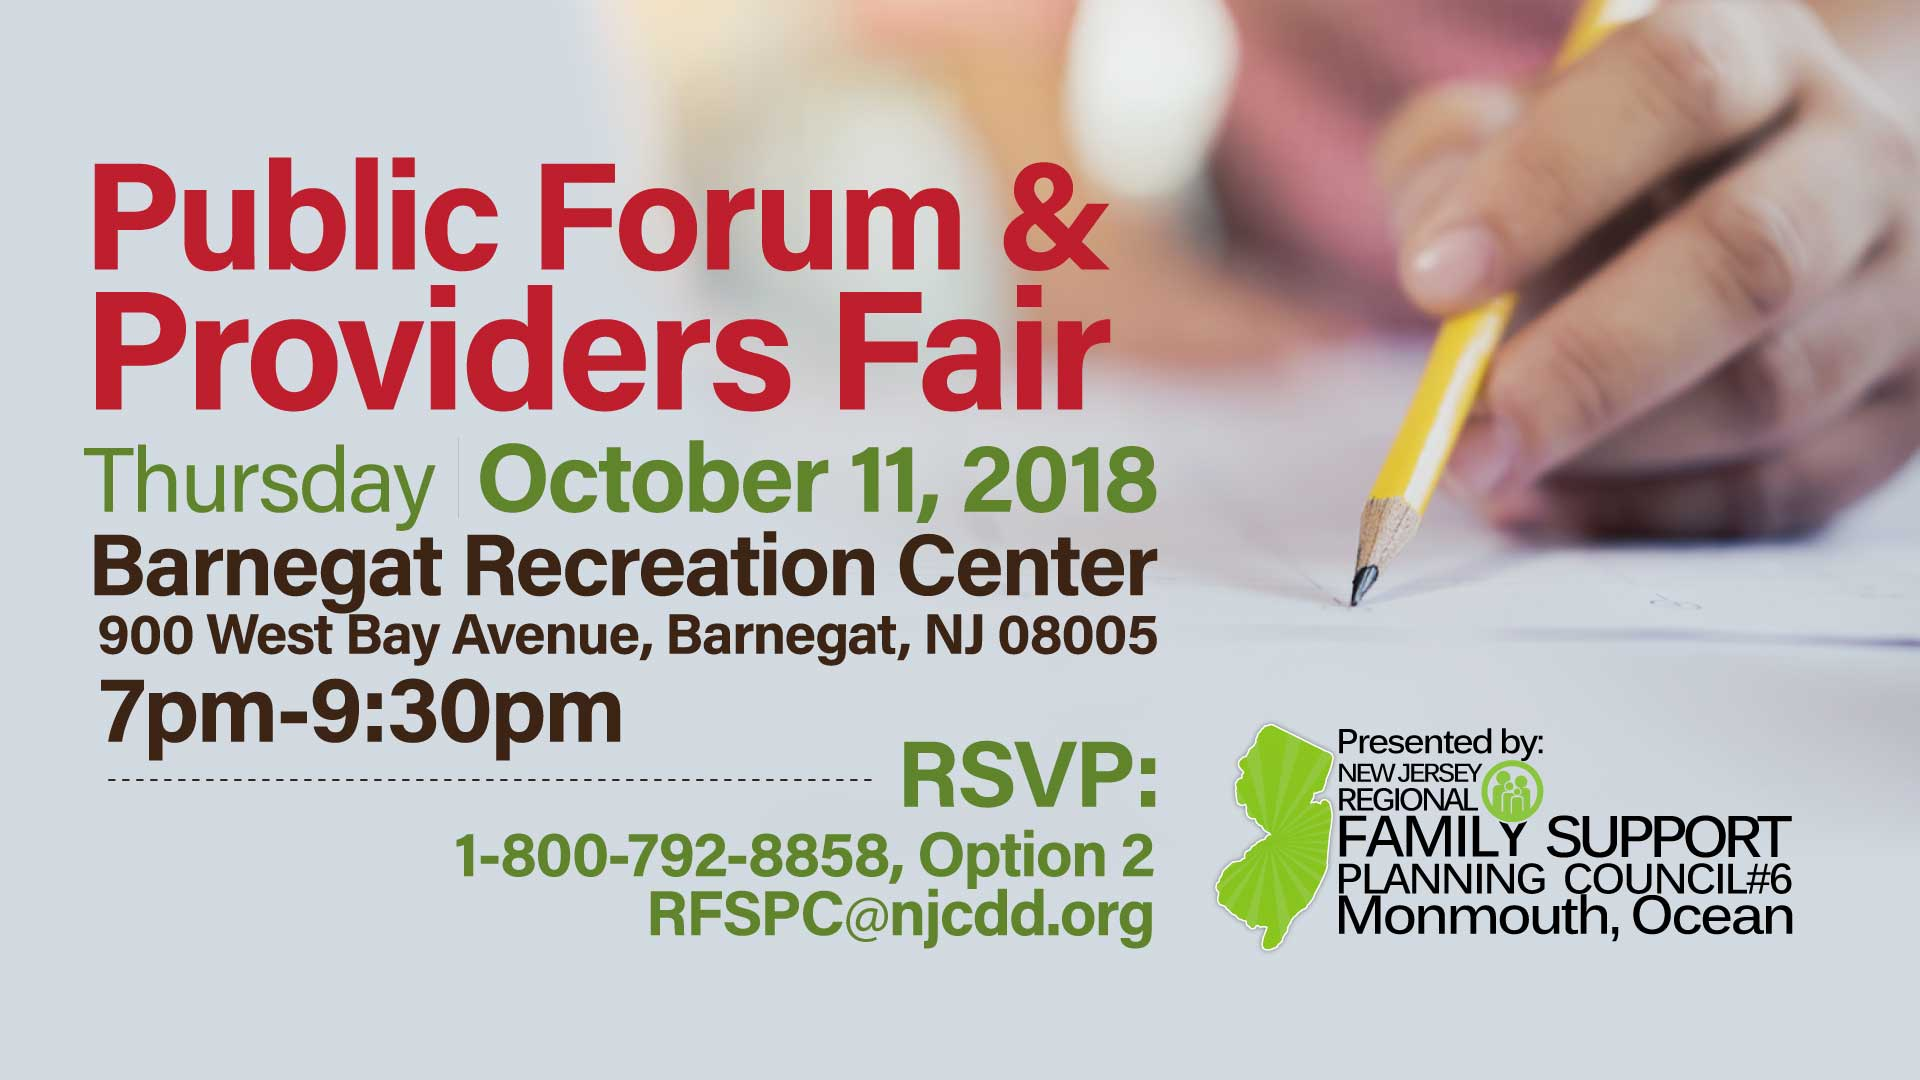 RFSPC6-Public-Forum and Providers Fair-Oct112018